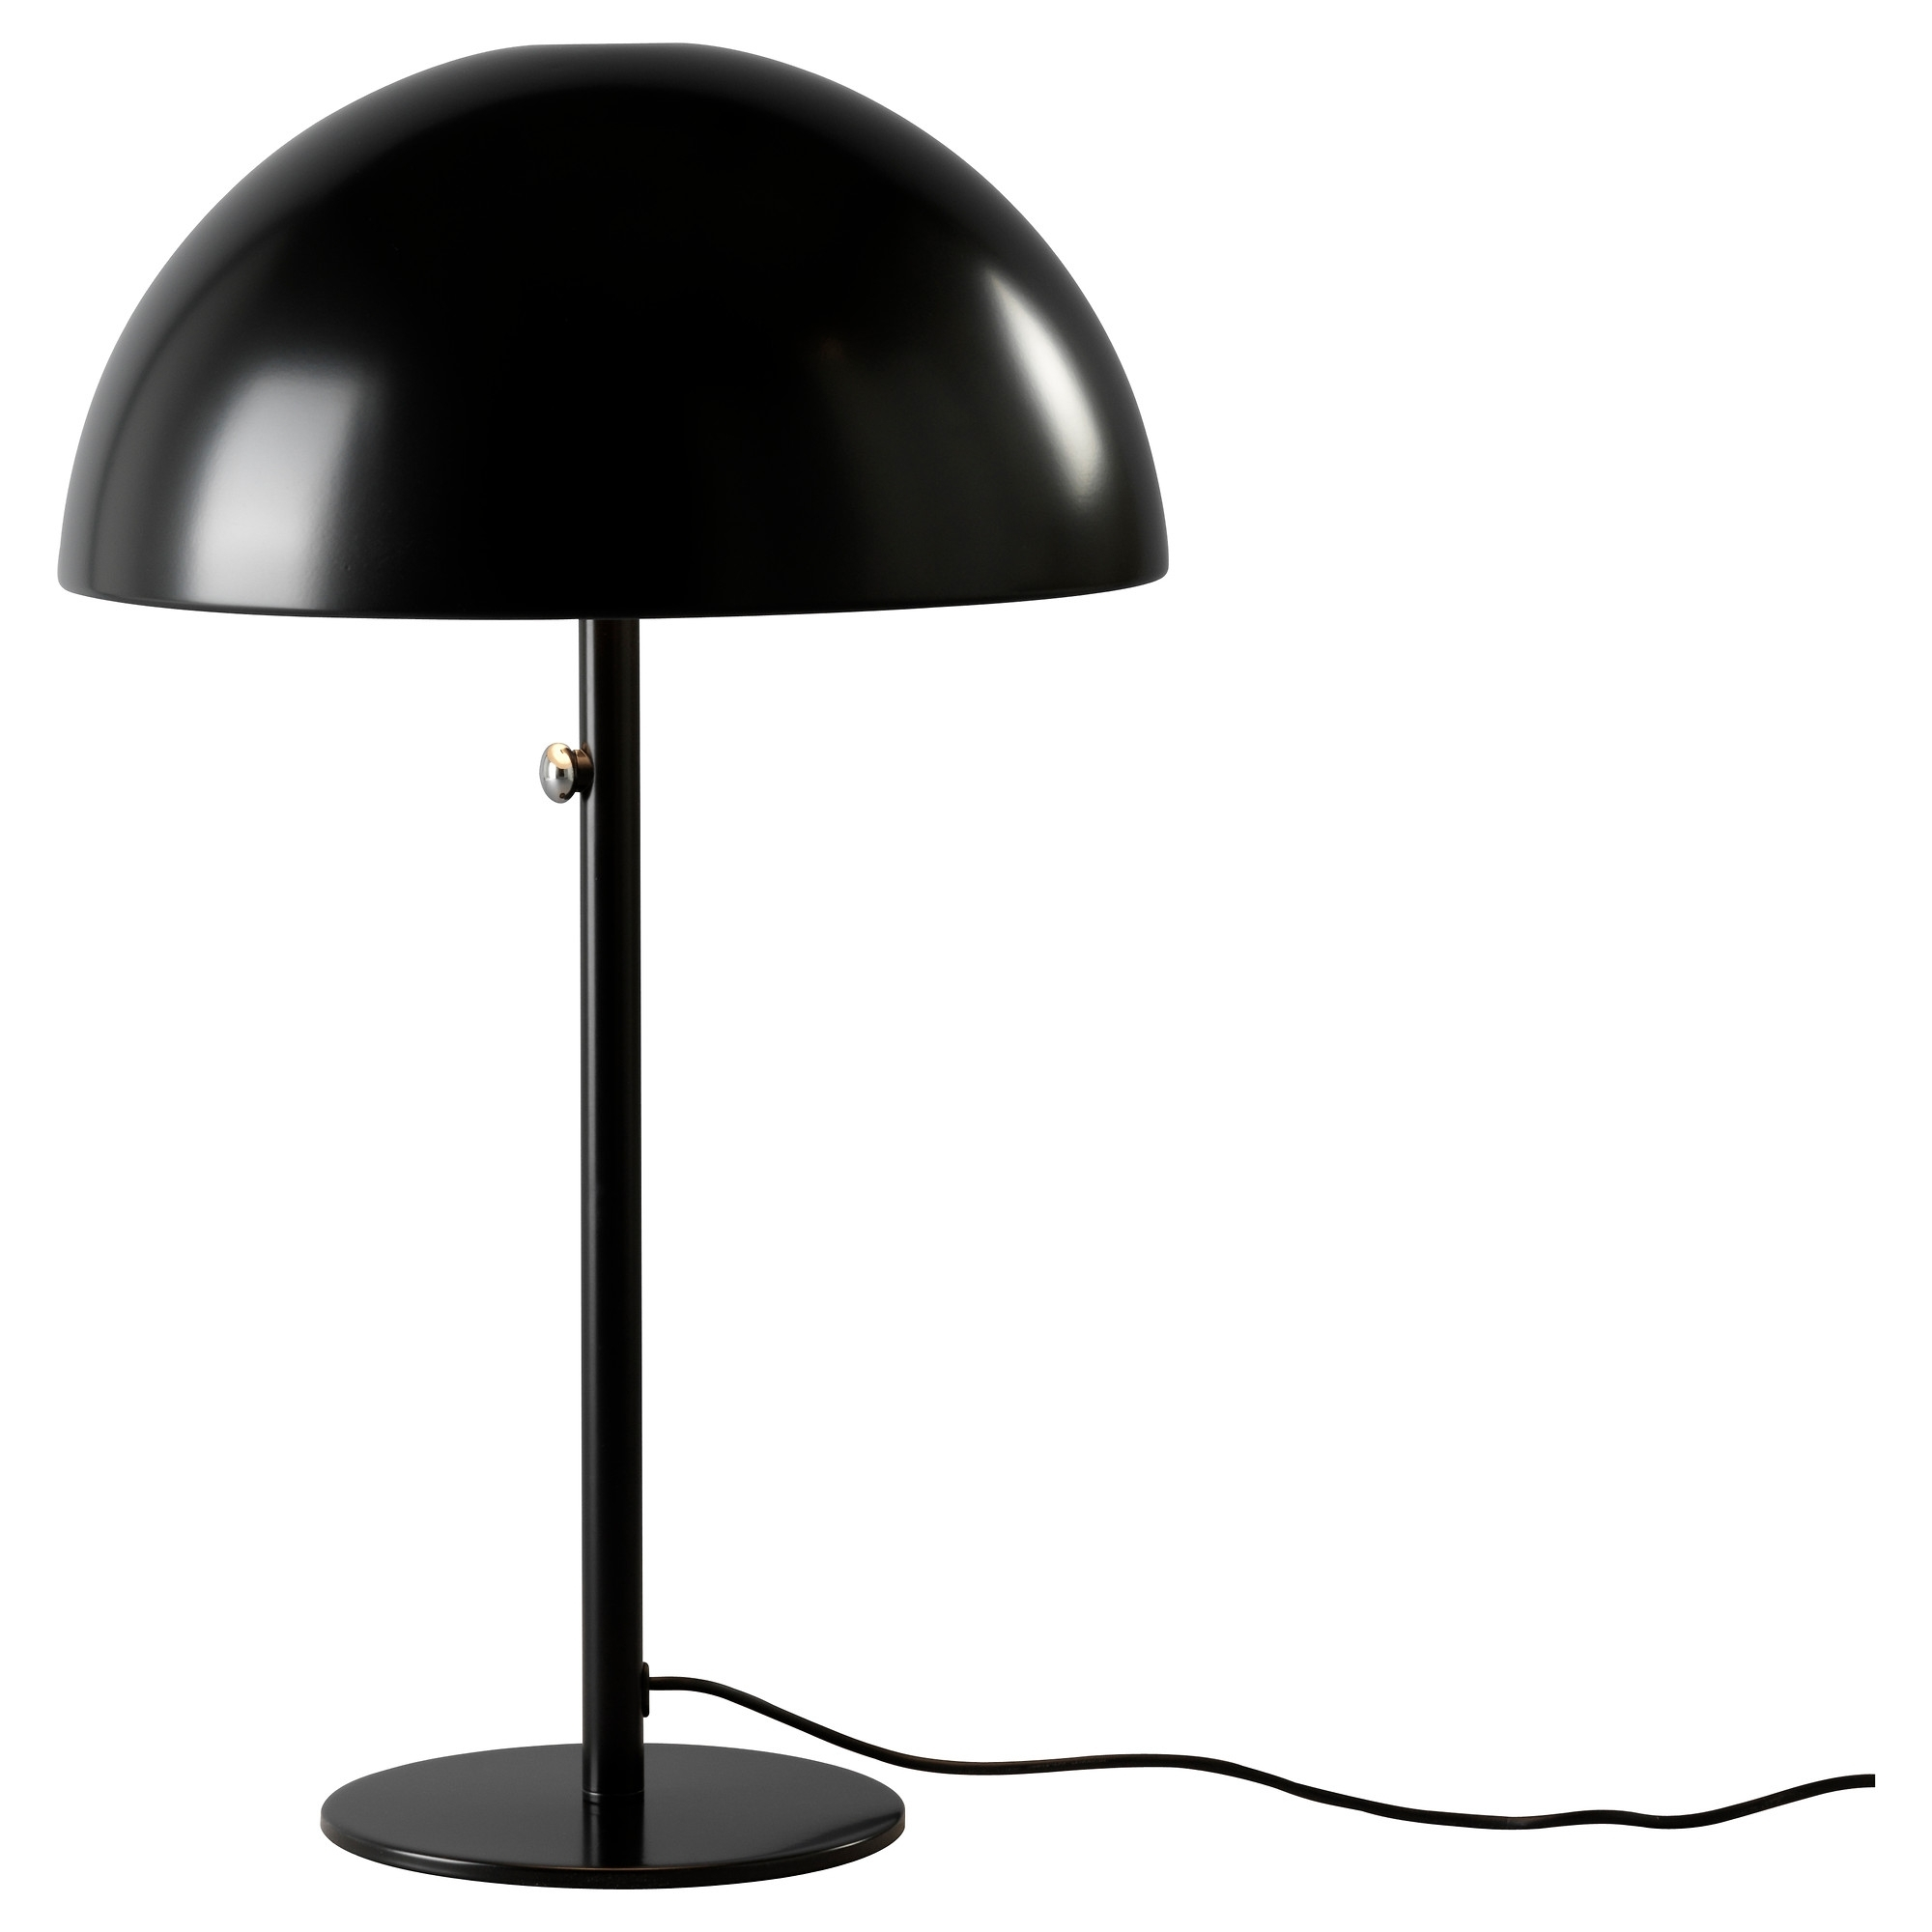 Exciting Ikea Night Table Lamps Pics Ideas – Surripui Within Living Room Table Lamps At Ikea (#5 of 15)